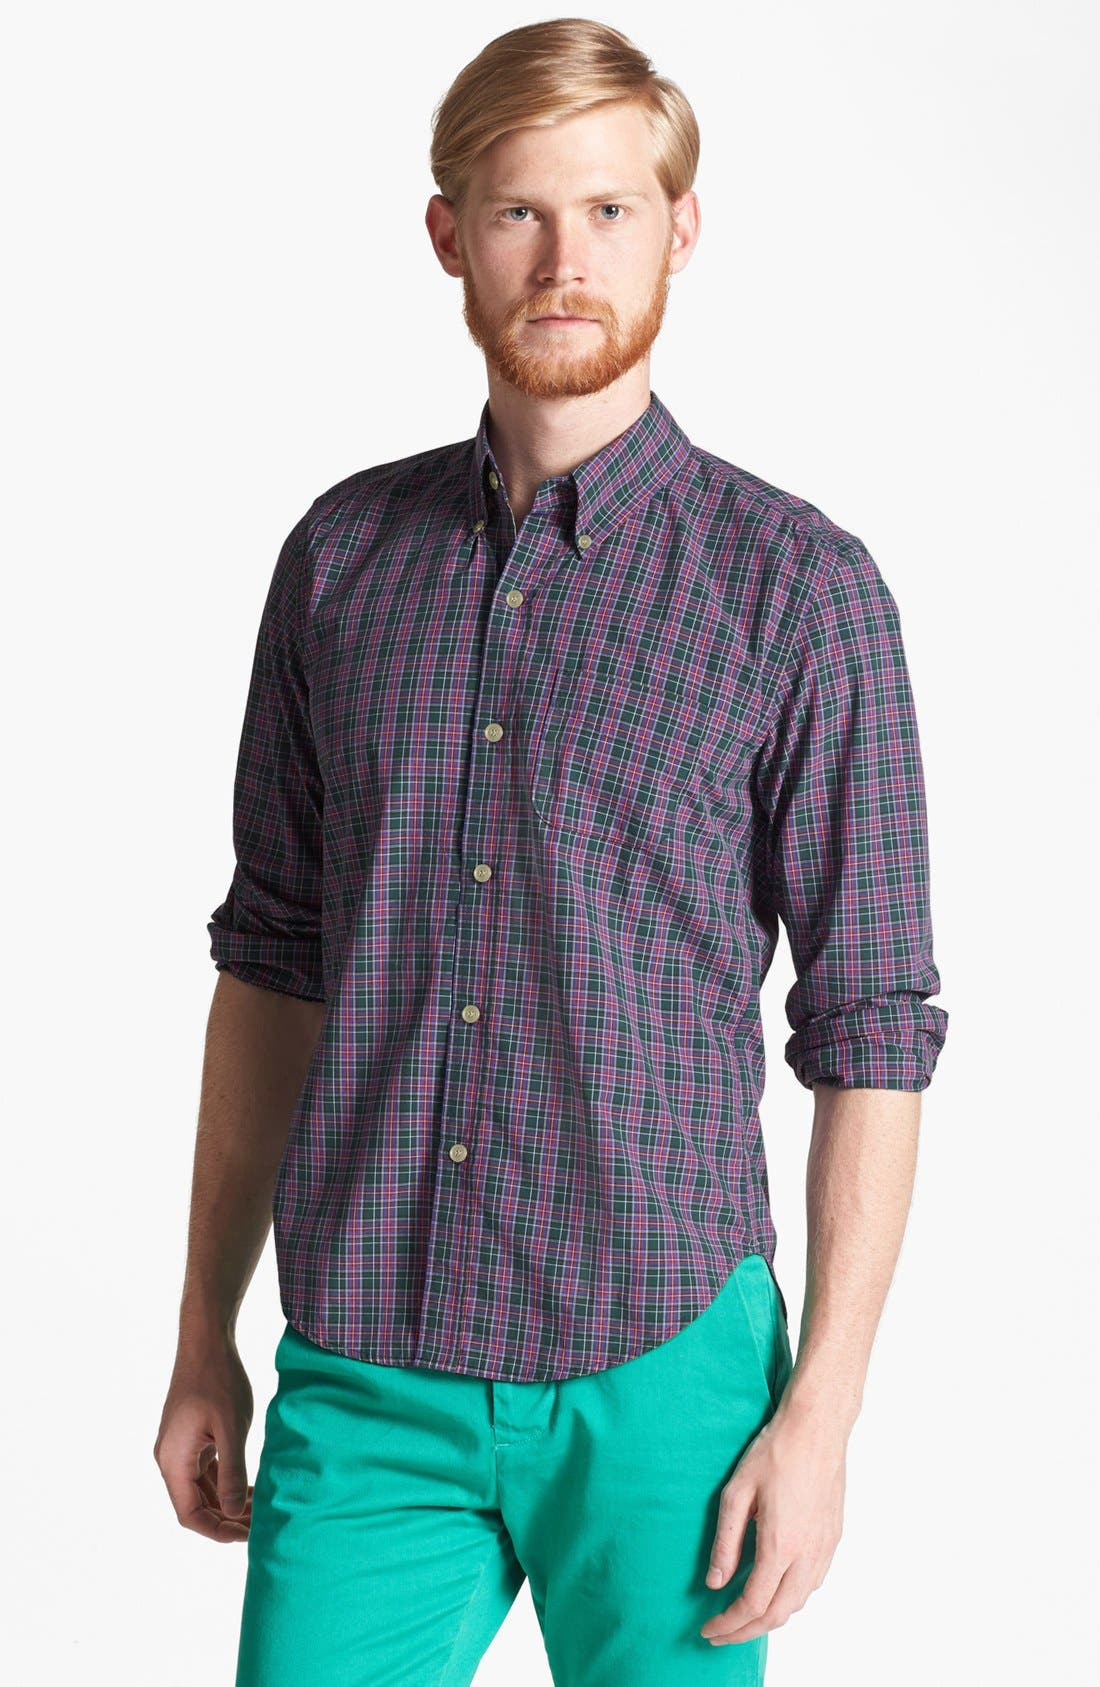 Main Image - Band of Outsiders 'Ranger' Plaid Cotton Shirt